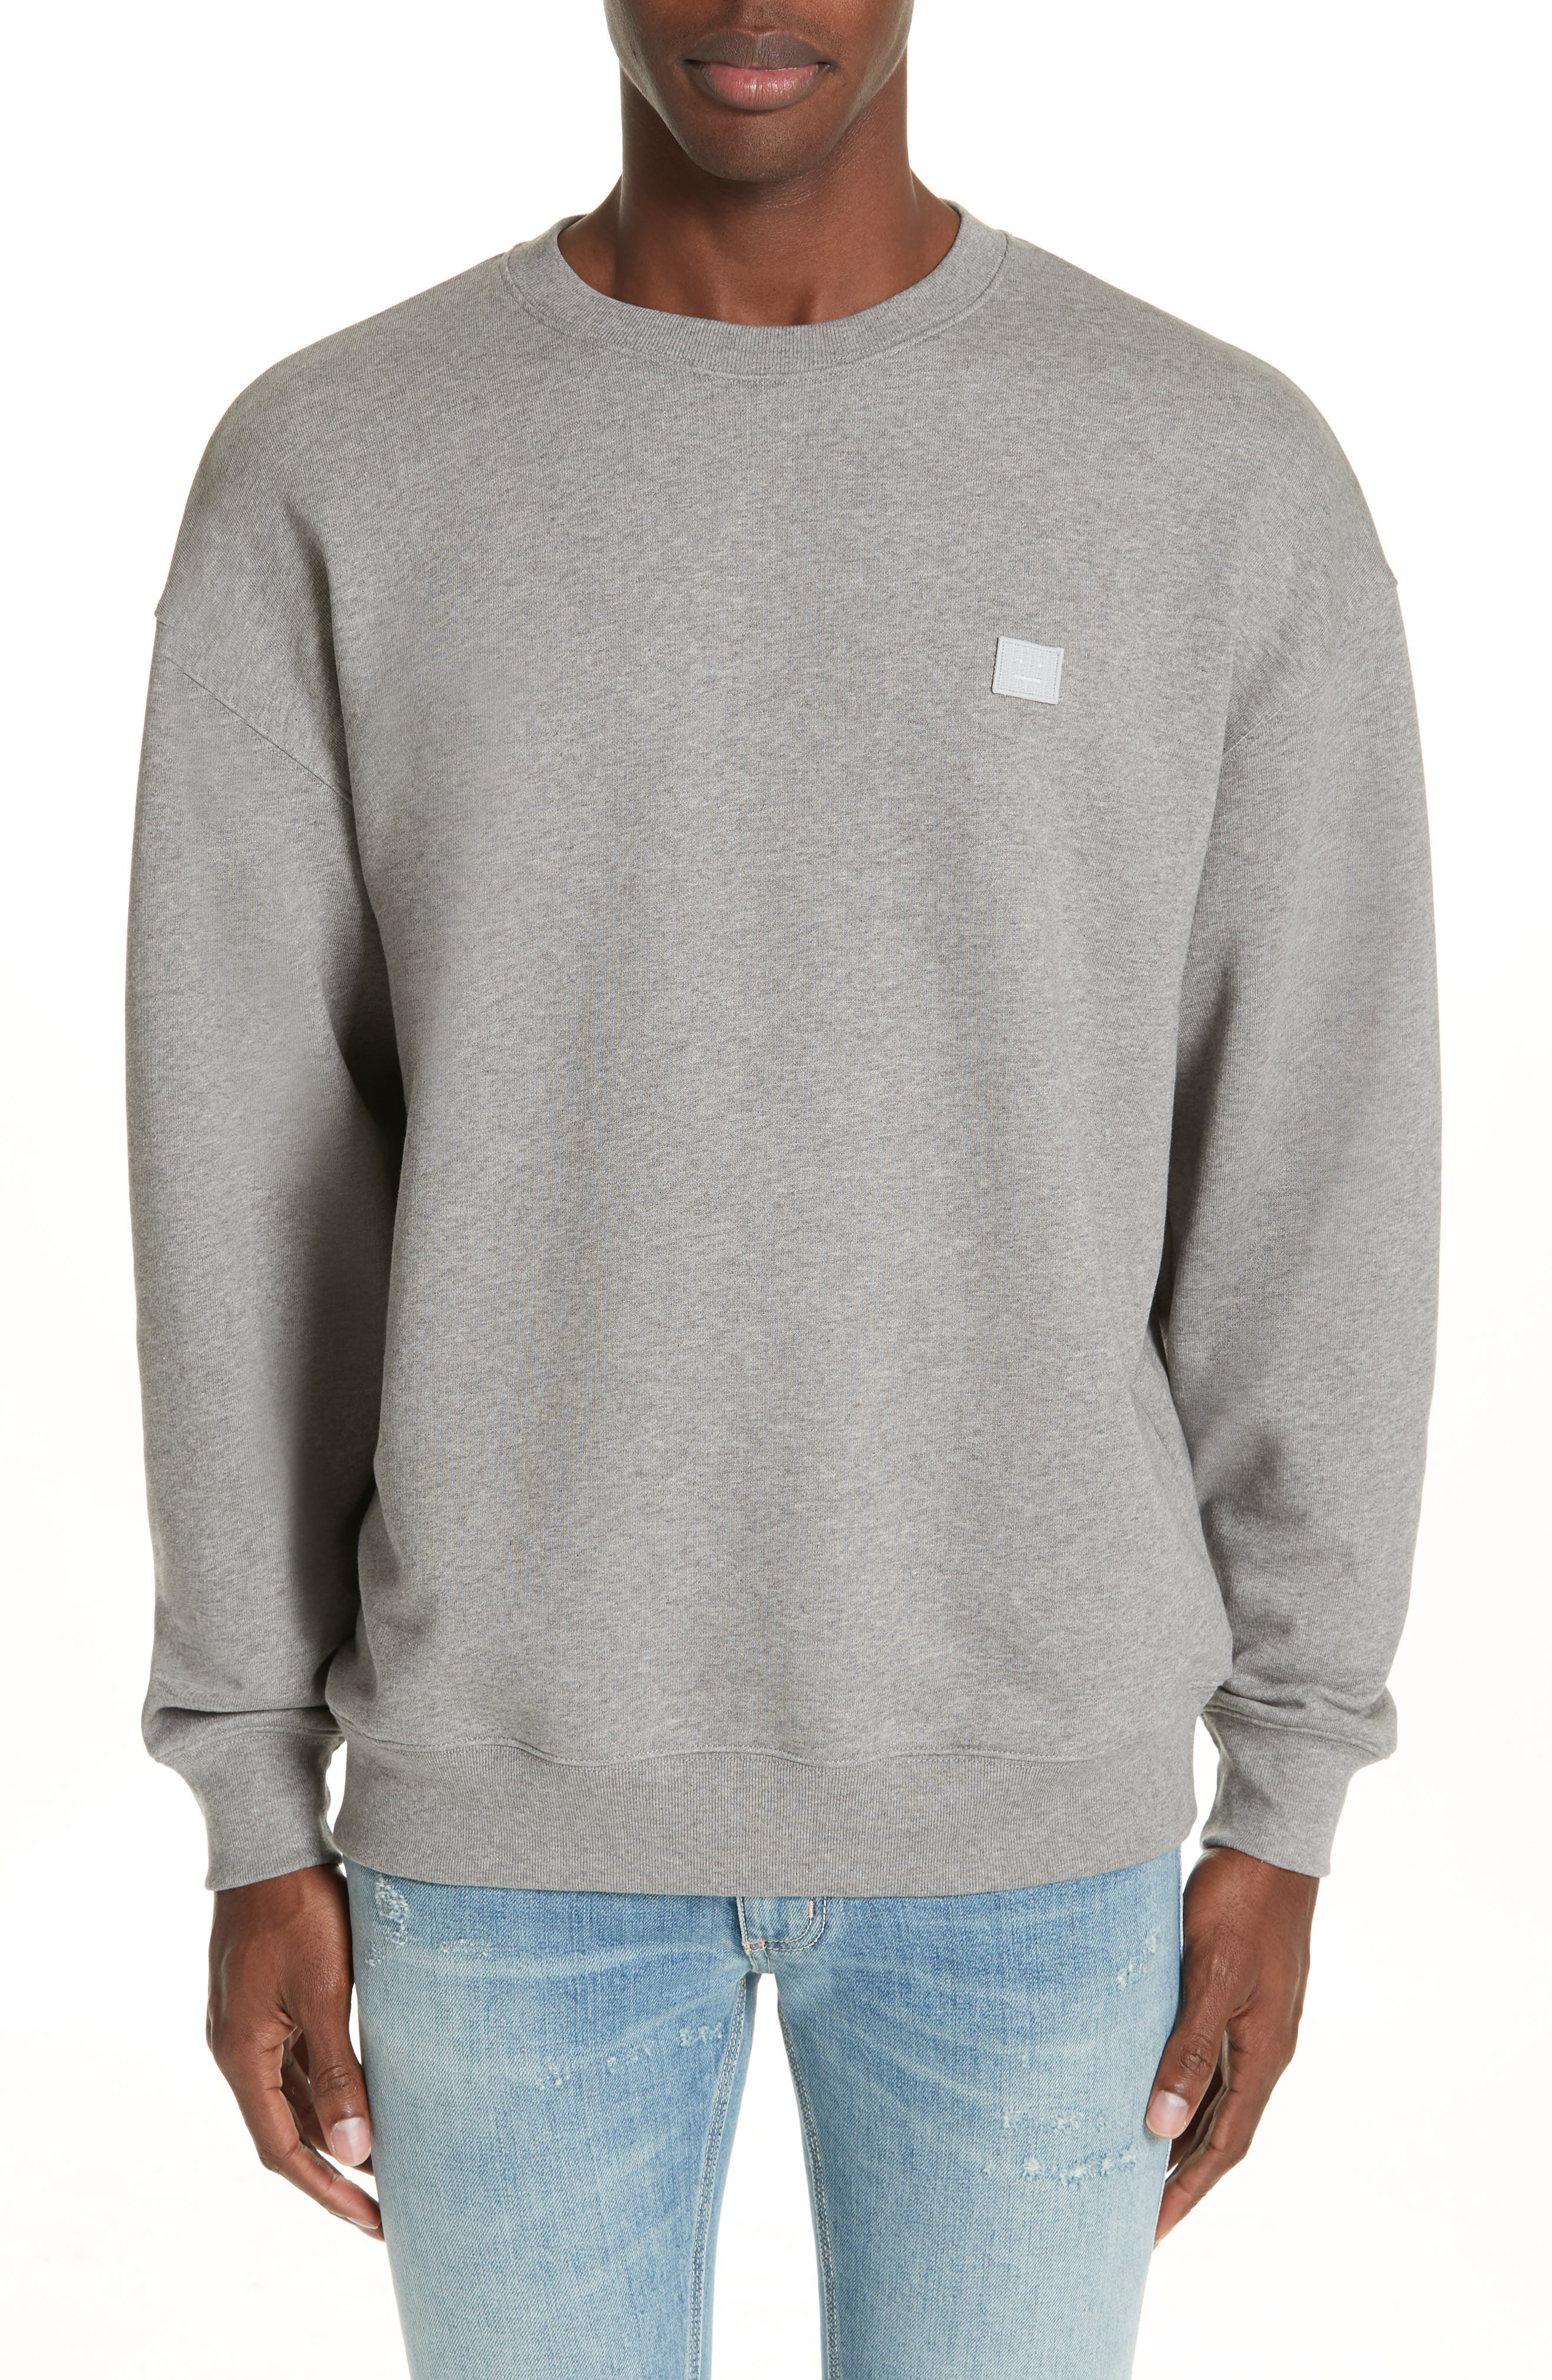 ACNE STUDIOS Forba Face Sweatshirt, Main, color, LIGHT GREY MELANGE